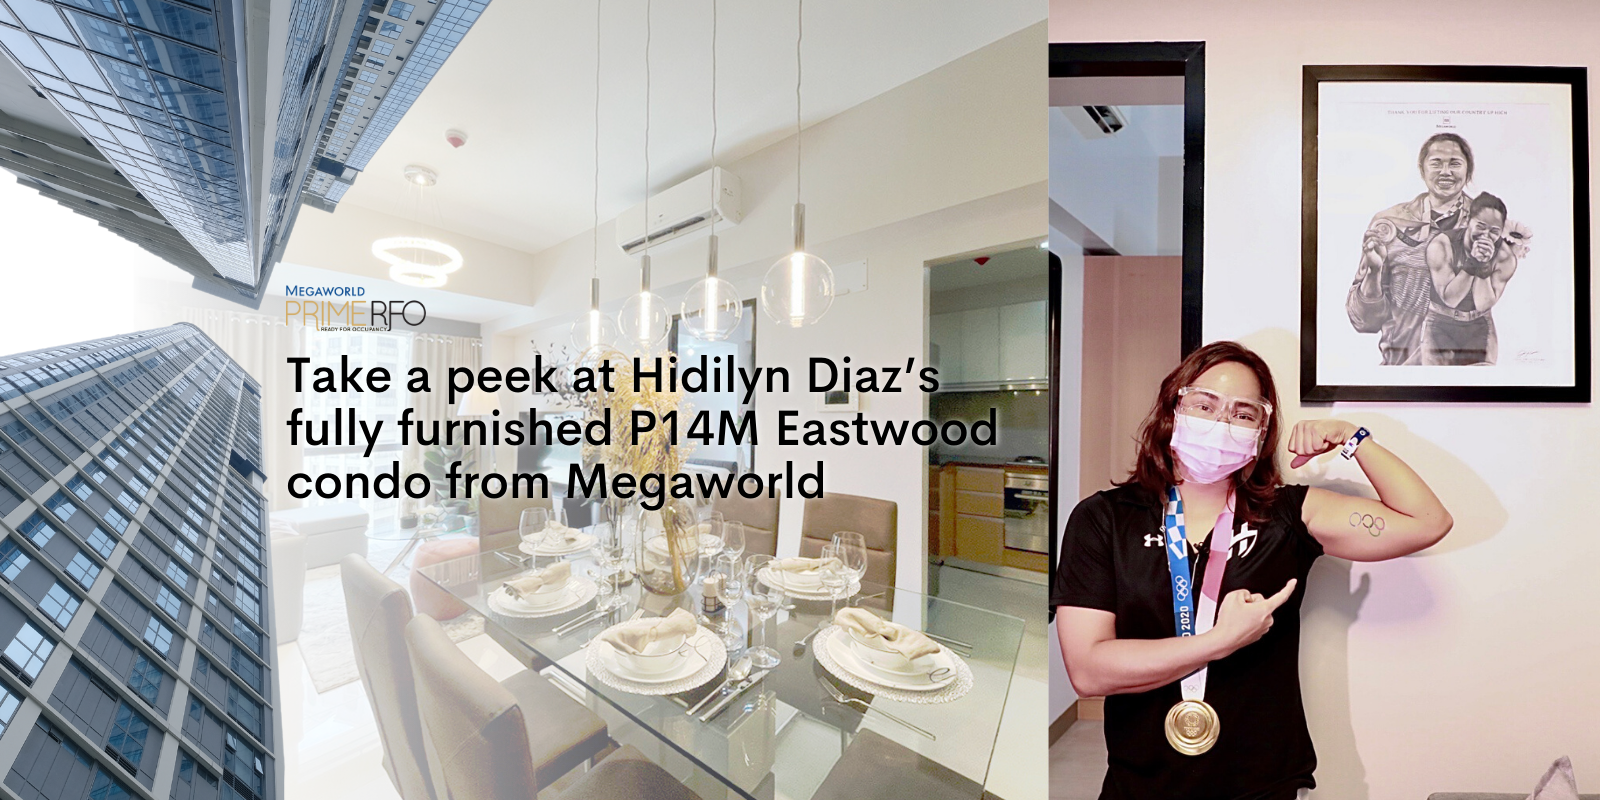 Take a peek at Hidilyn Diaz's fully furnished P14M Eastwood condo from Megaworld